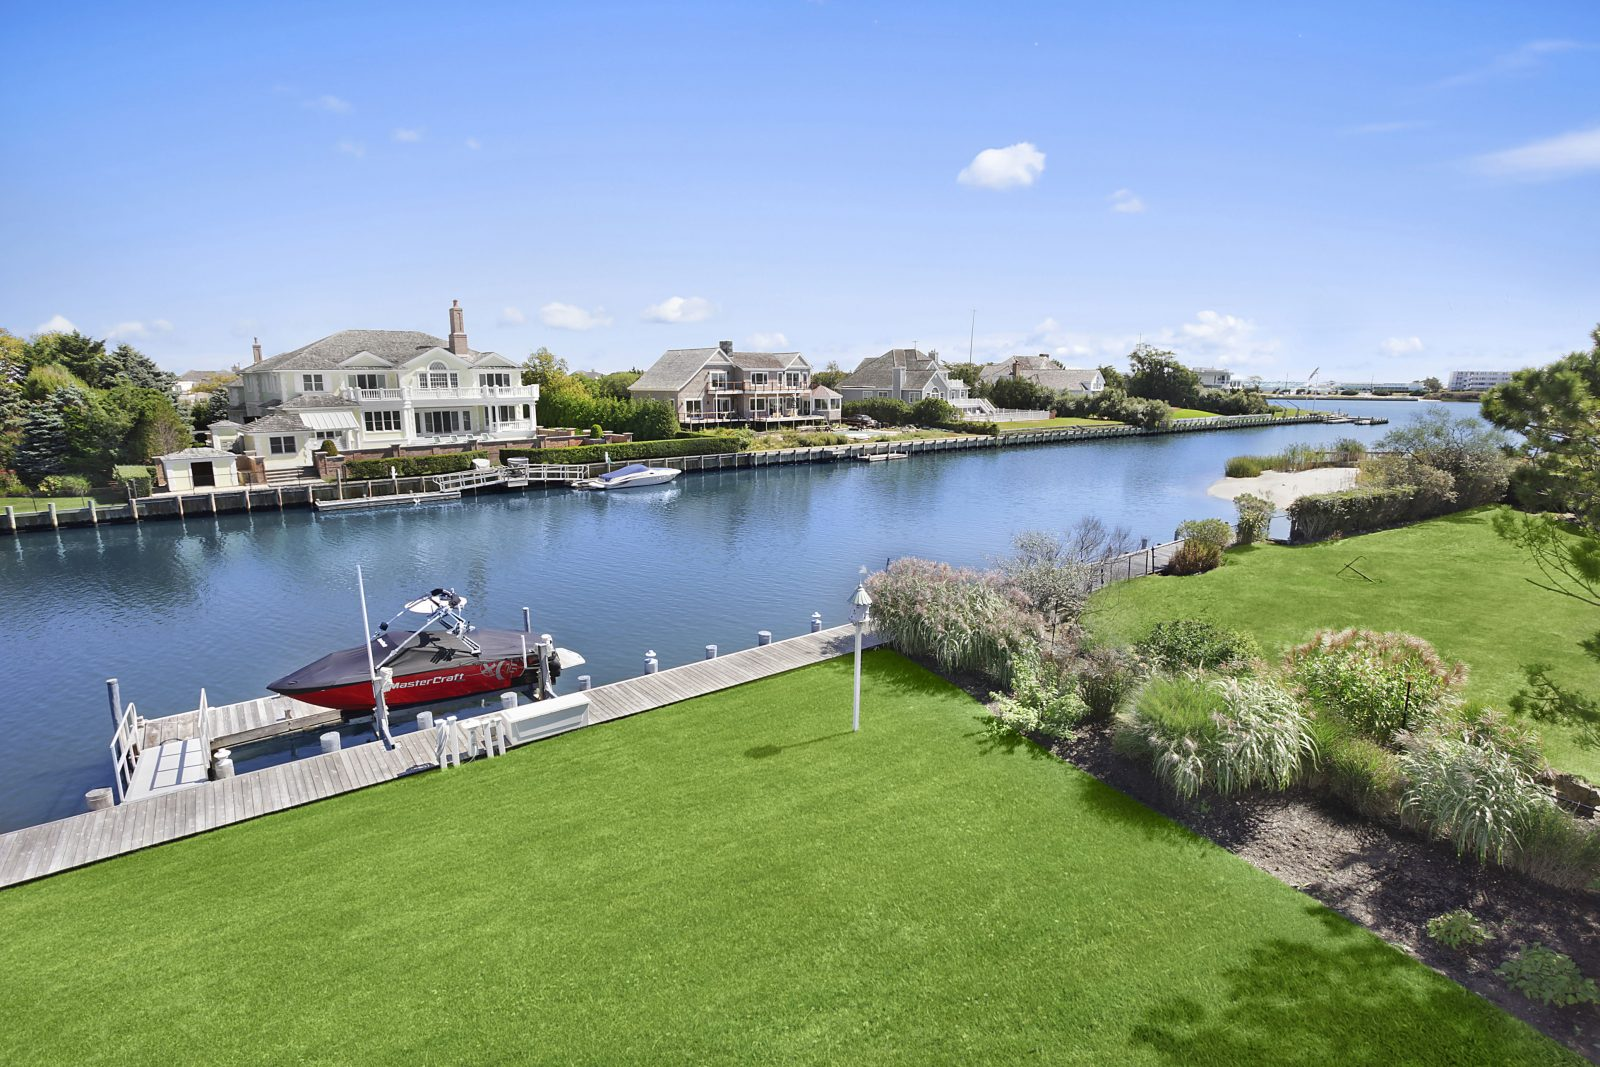 westhampton beach chat sites 499 dune rd, westhampton beach, ny is a 2800 sq ft, 4 bed, 3 bath home listed on trulia for $3,390,000 in westhampton beach, new york.